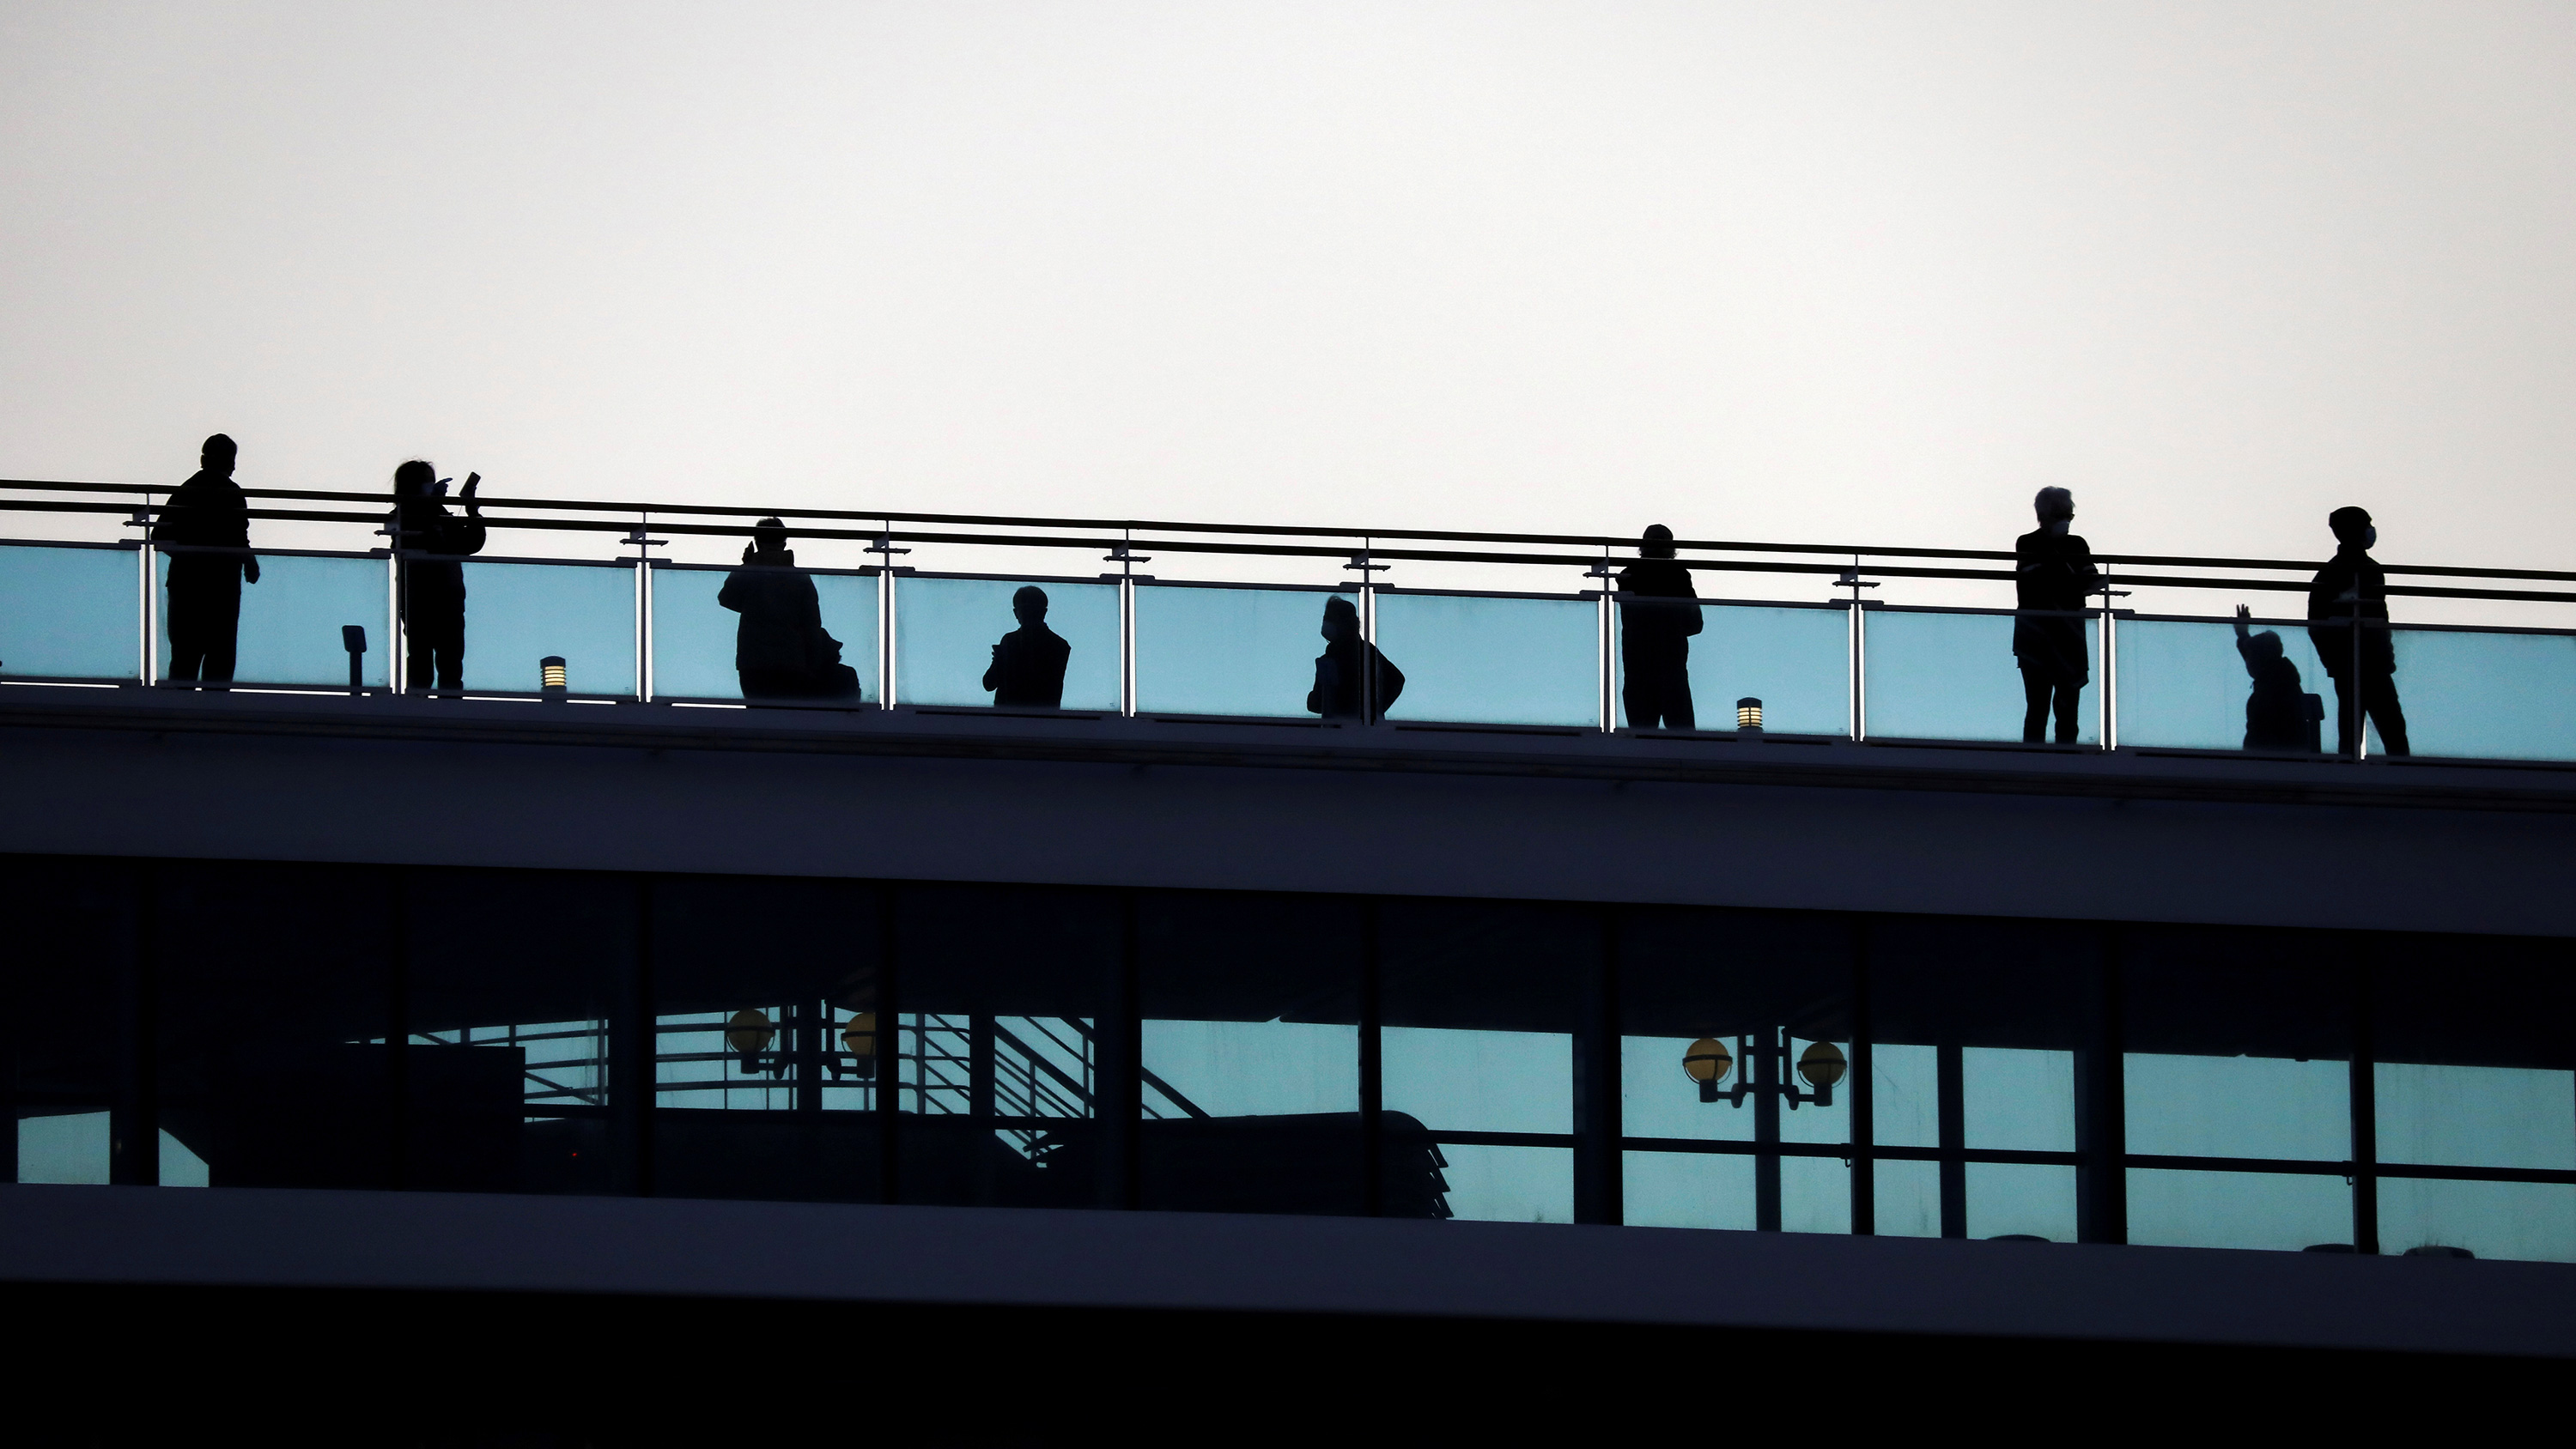 The image shows a couple rows of passengers on two decks, one below the other. They are standing against a bright background and appear as silhouettes.